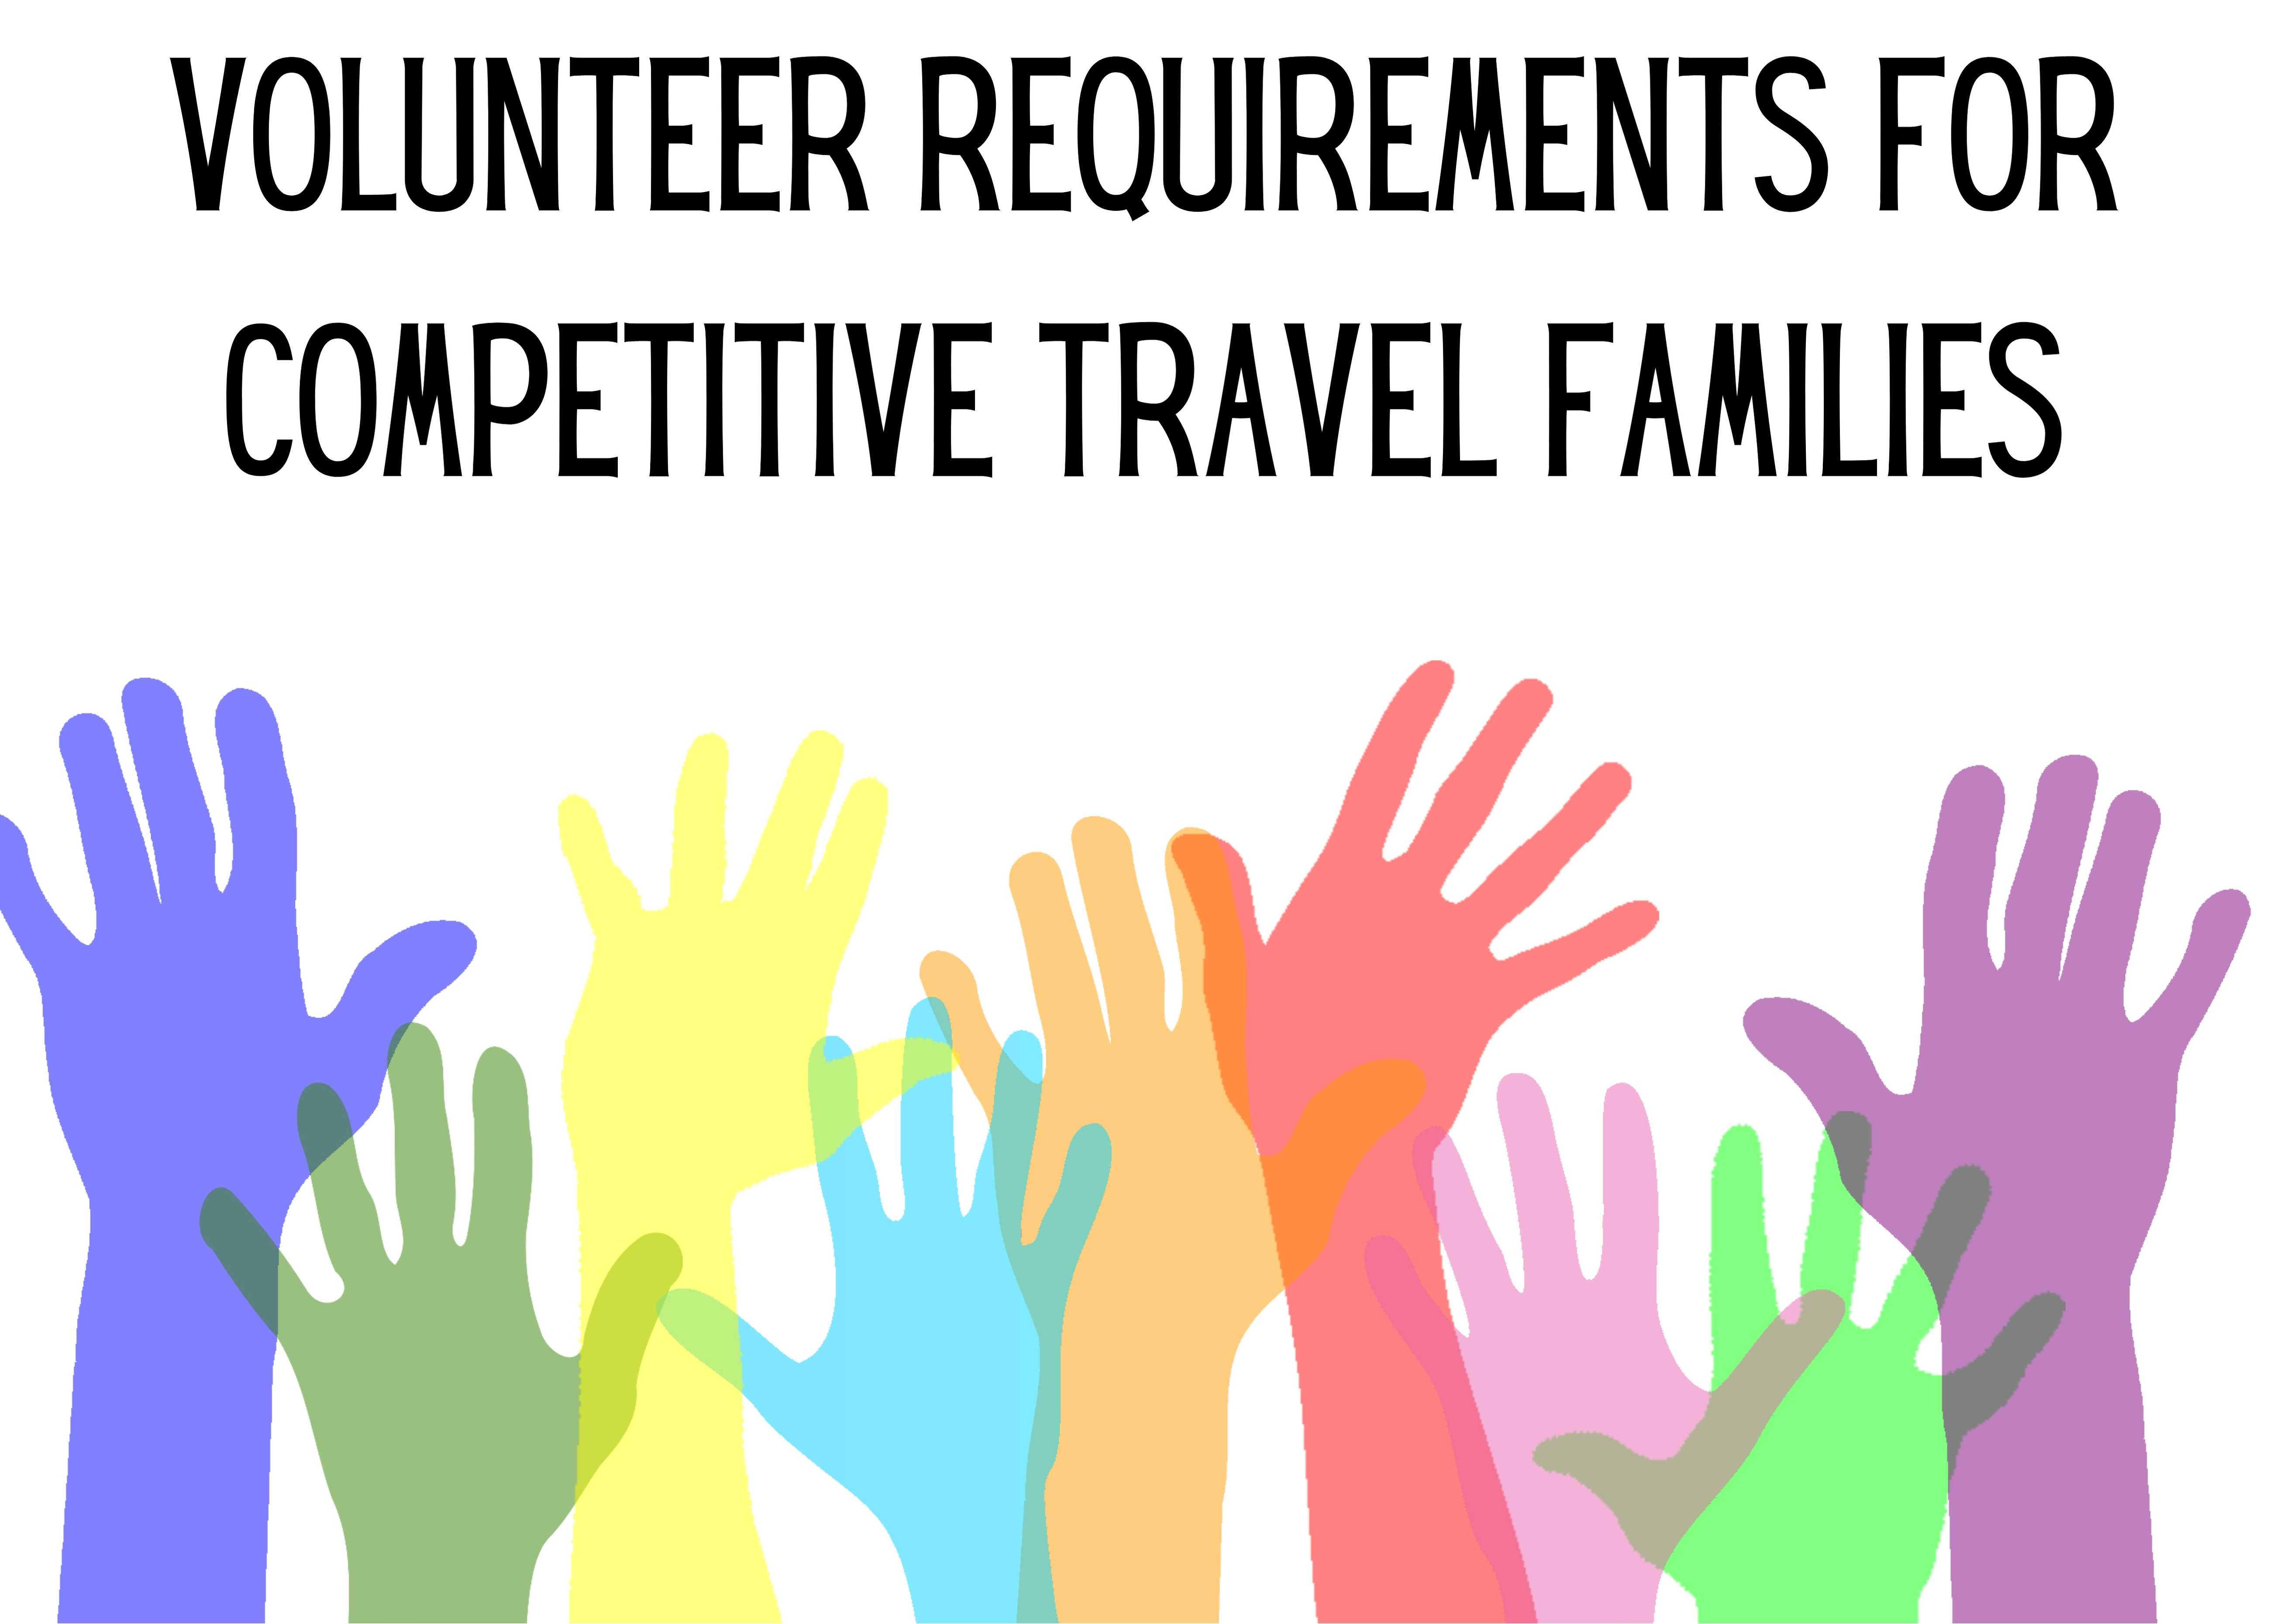 Volunteer Requirements for Travel Families